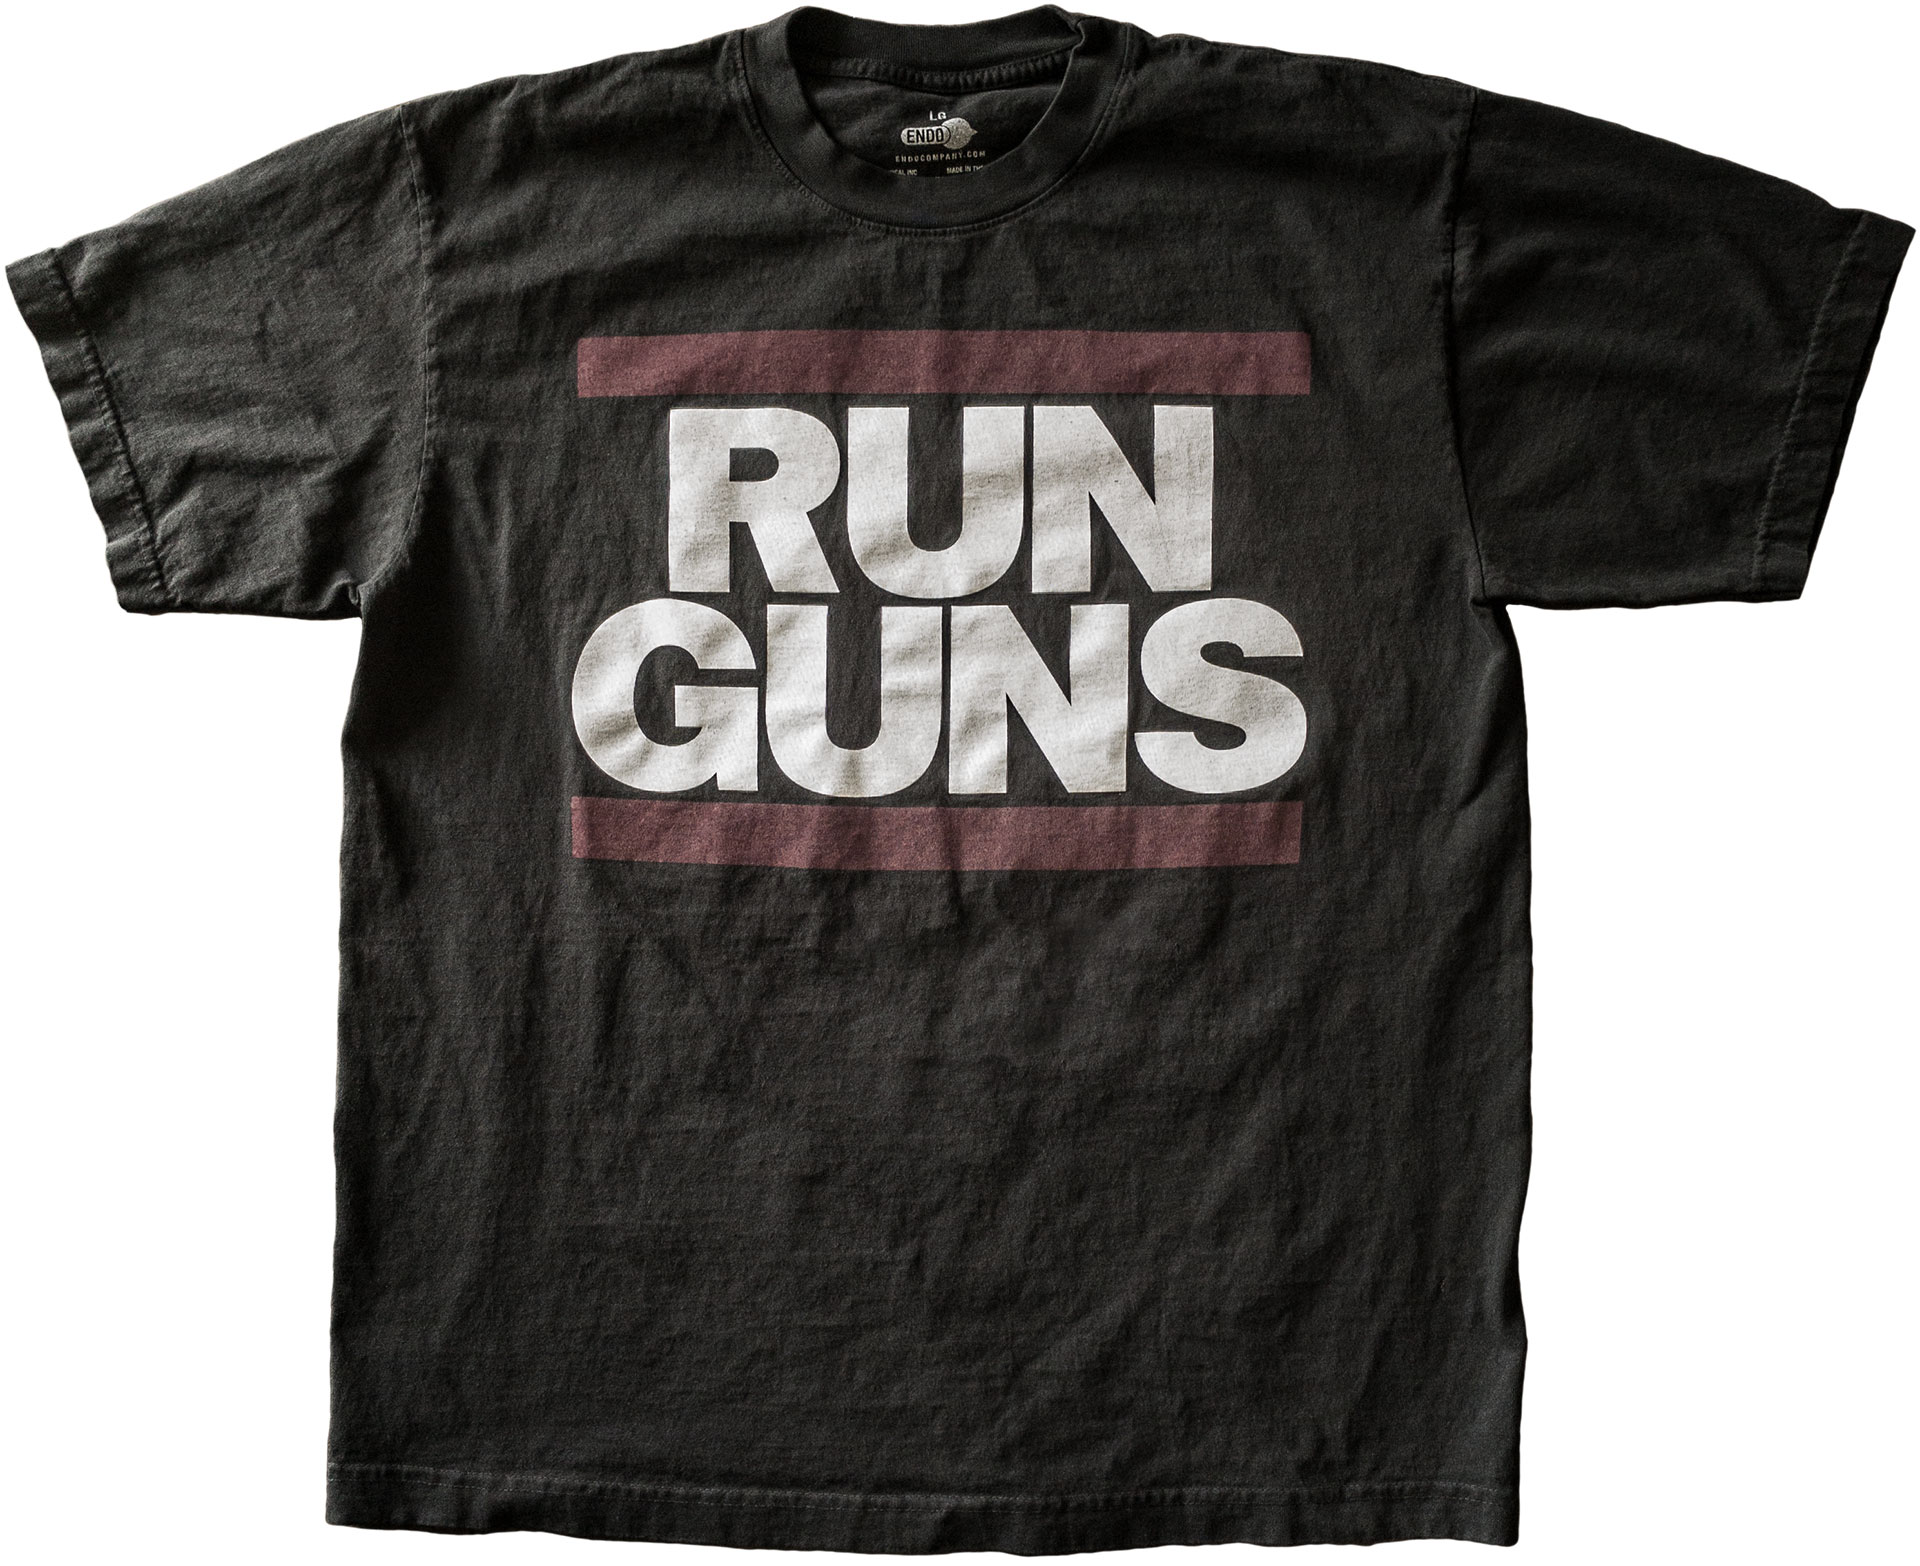 Run Guns T-shirt